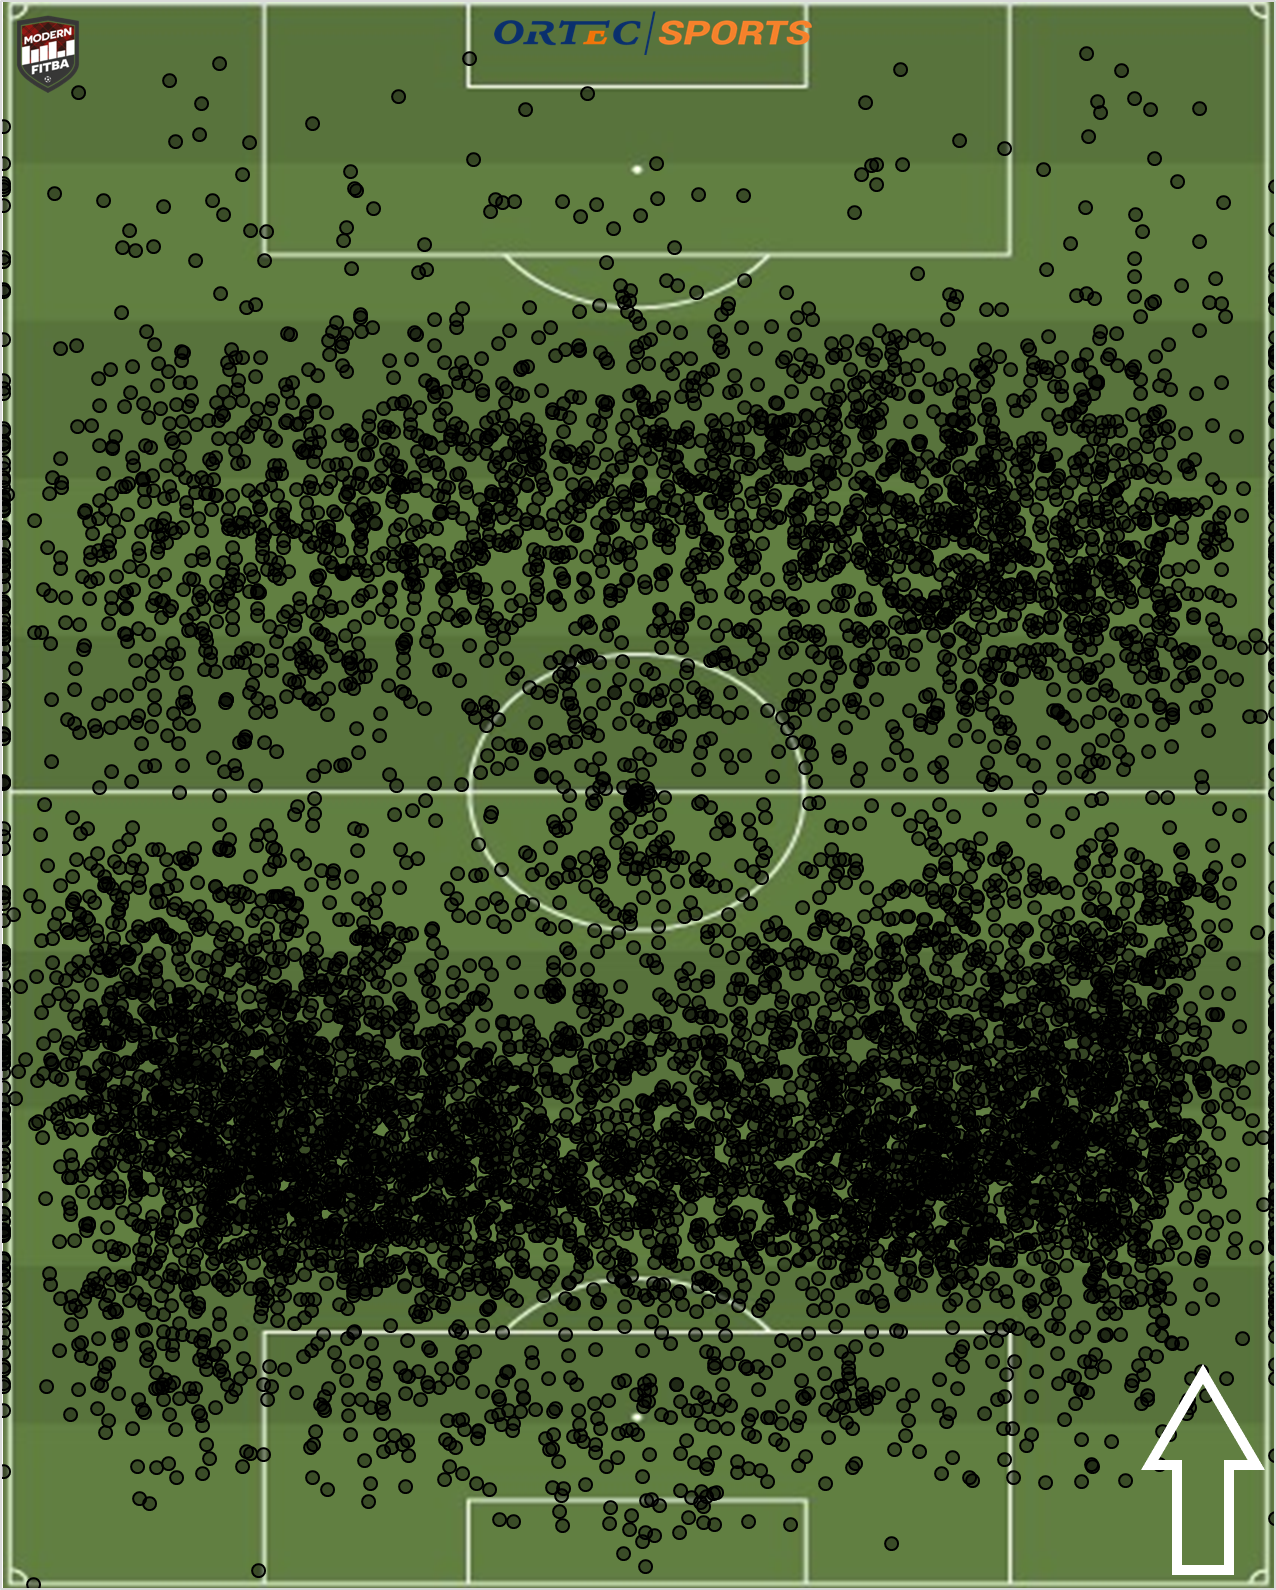 The location of the destination of where every pass a keeper made in the Premiership in the 2018-19 season.